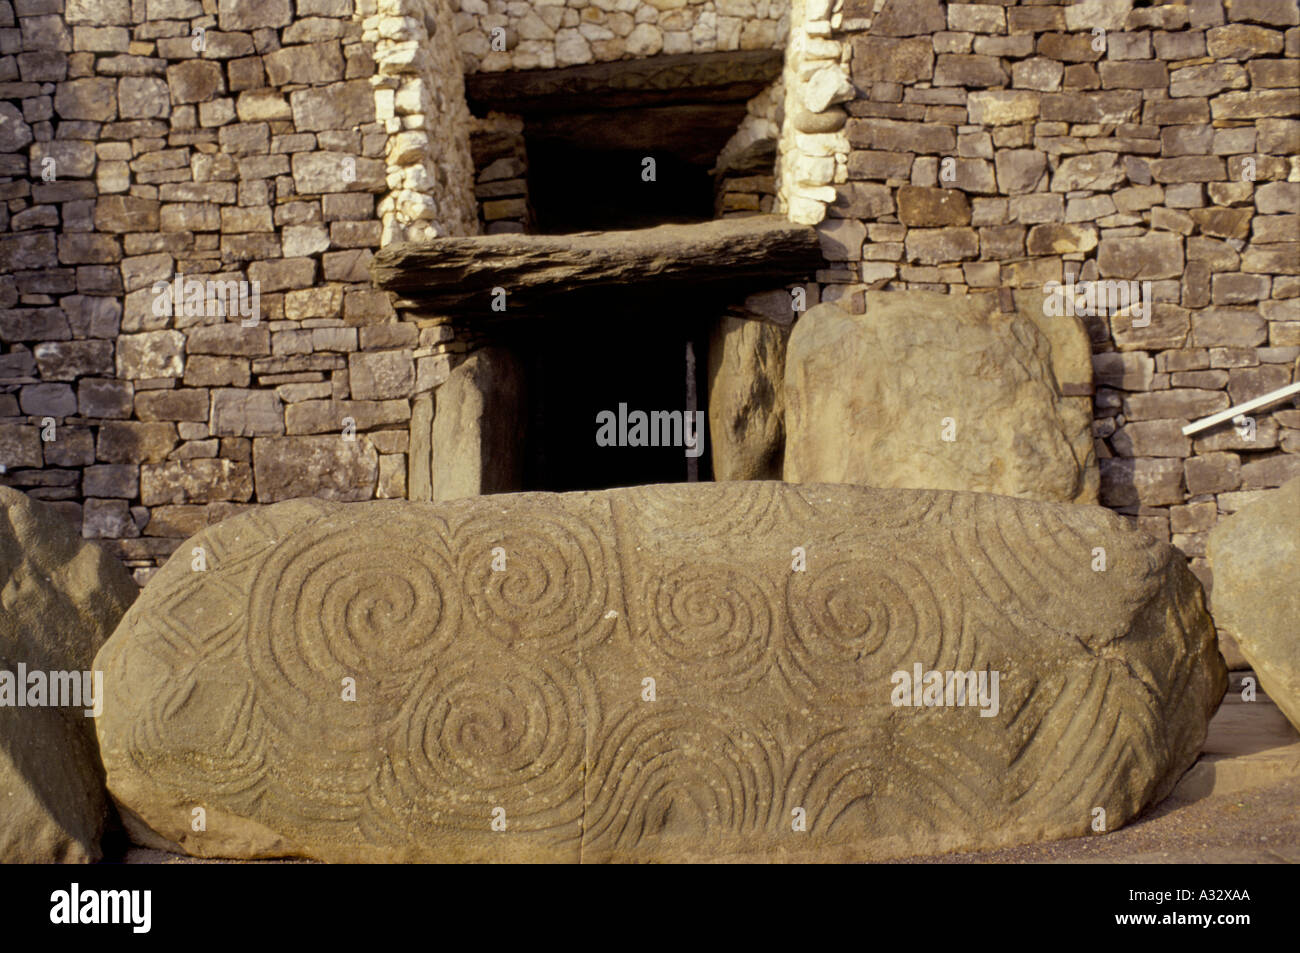 The triple spiral, found only at Newgrange, Ireland occurs both on the entrance stone and inside the chamber. Stock Photo